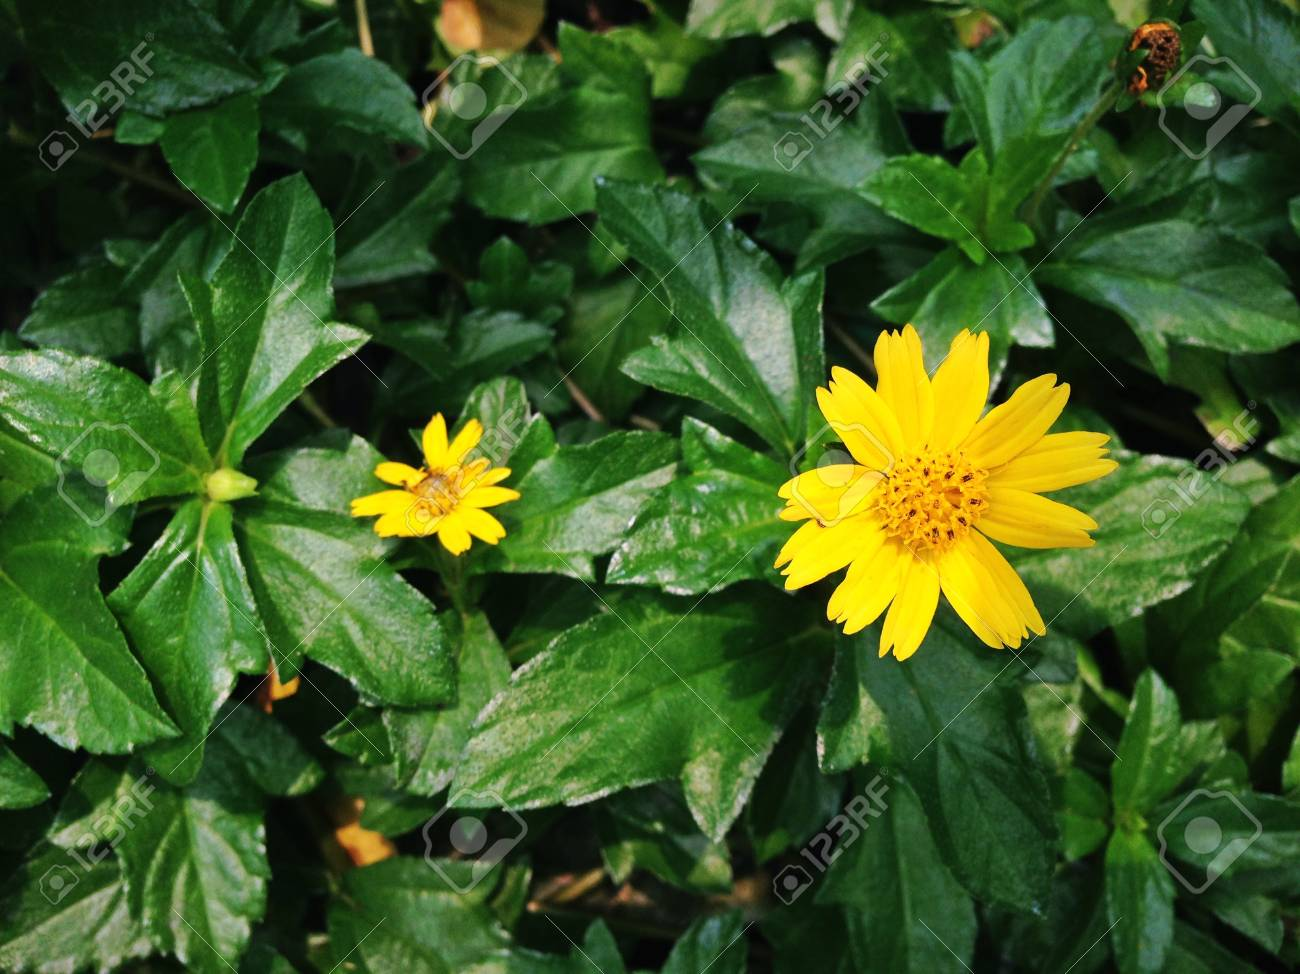 Beautiful melampodium divaricatum or little yellow star flower beautiful melampodium divaricatum or little yellow star flower in the garden stock photo 84211840 mightylinksfo